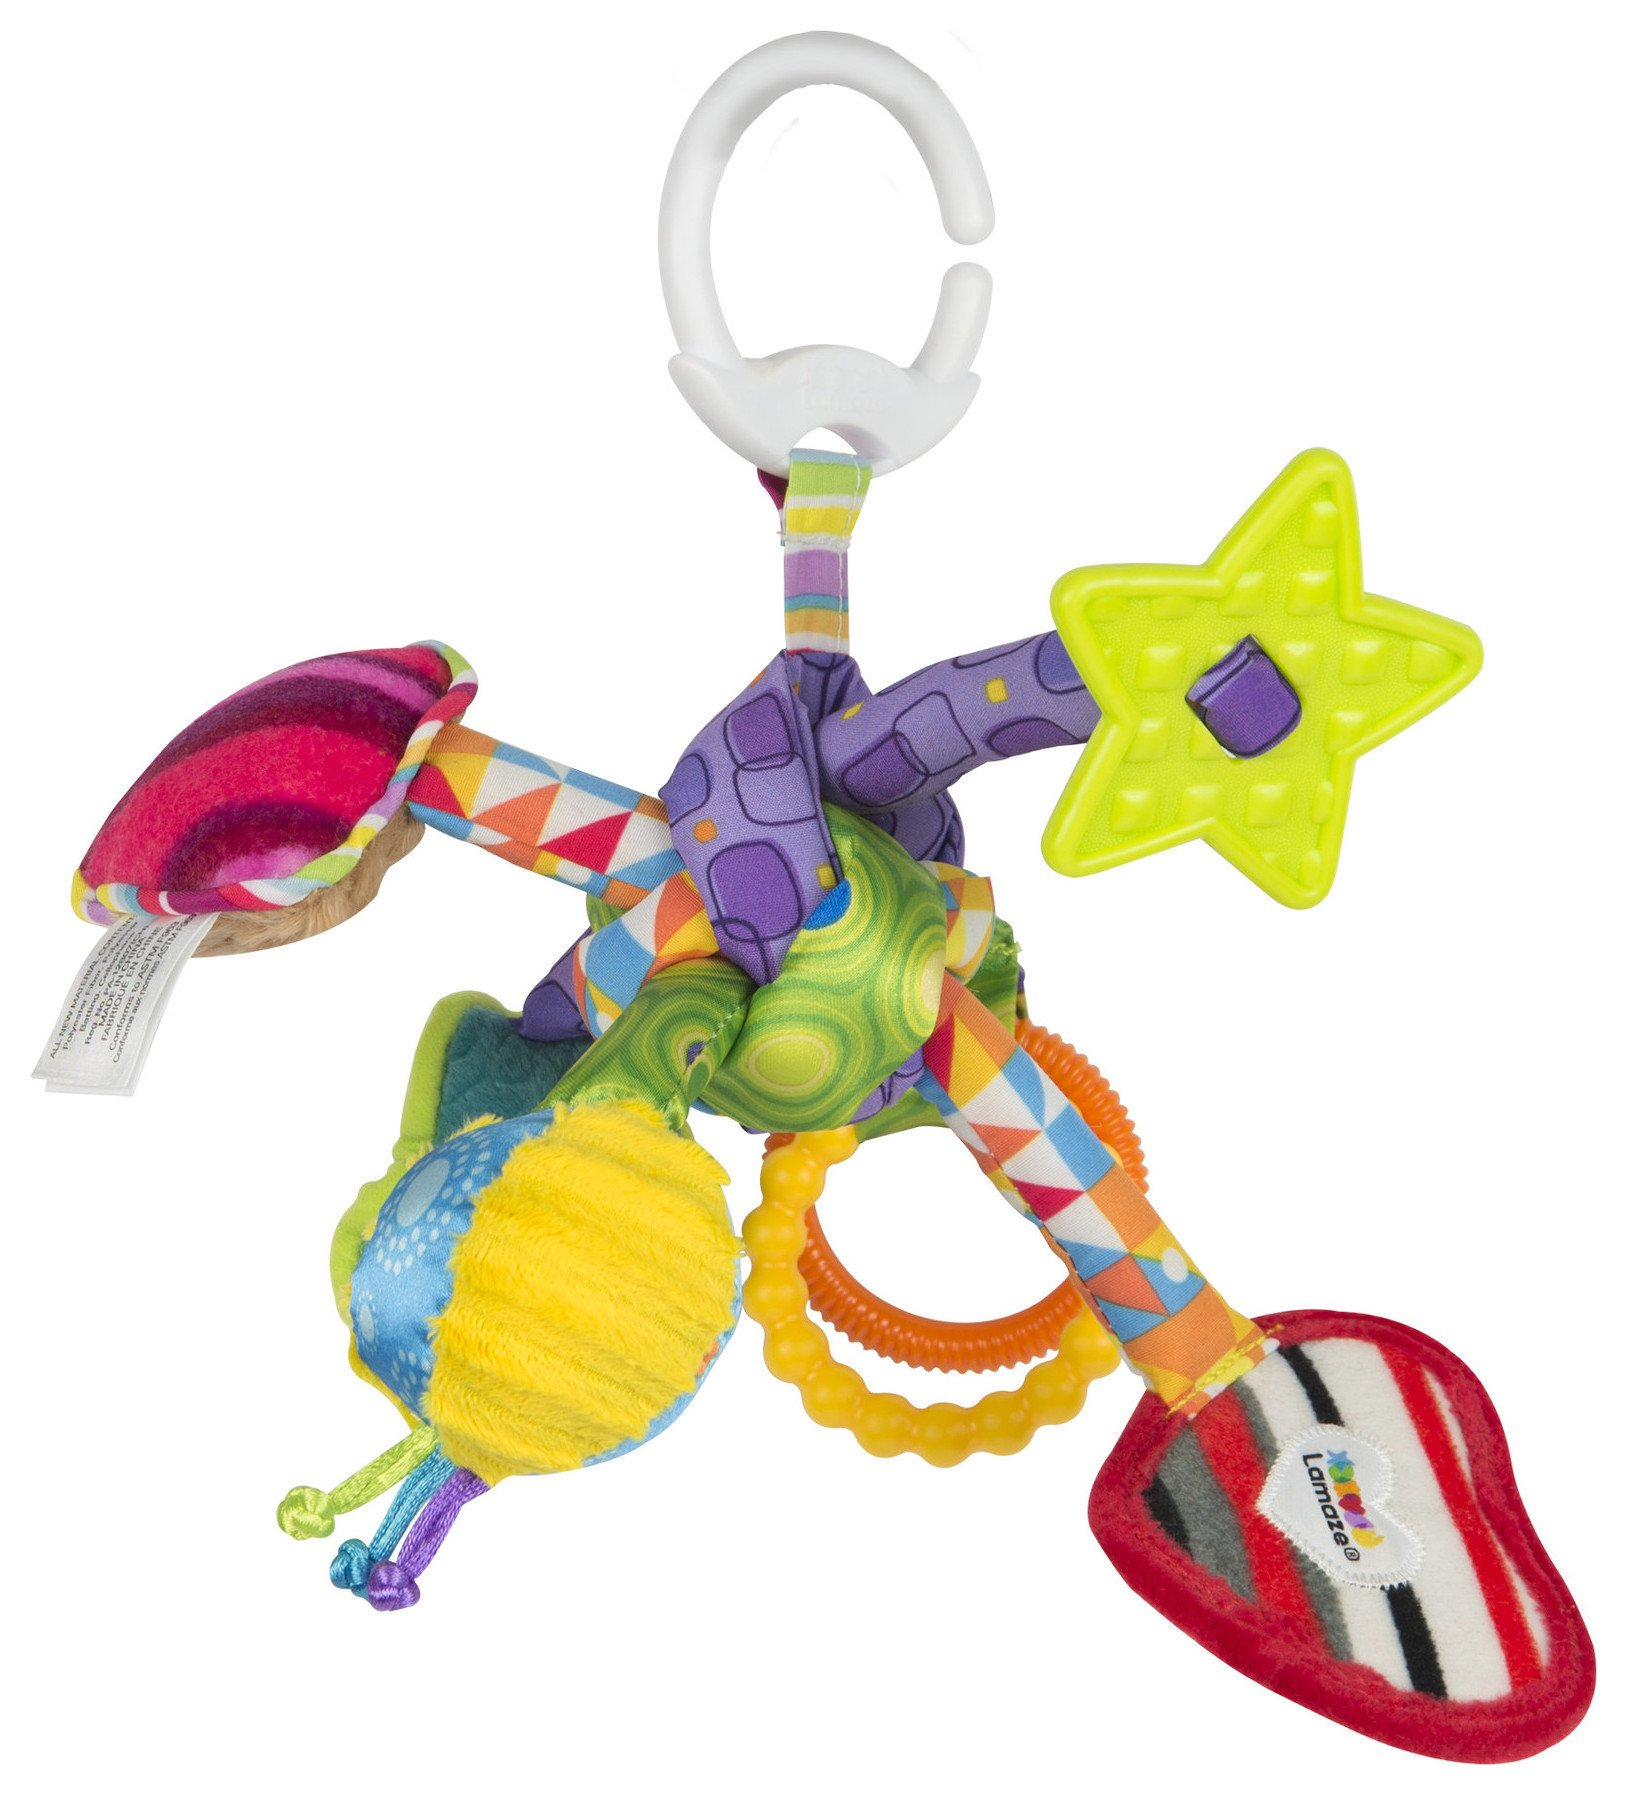 Image of Lamaze Tug and Play Knot On the Go Toy.